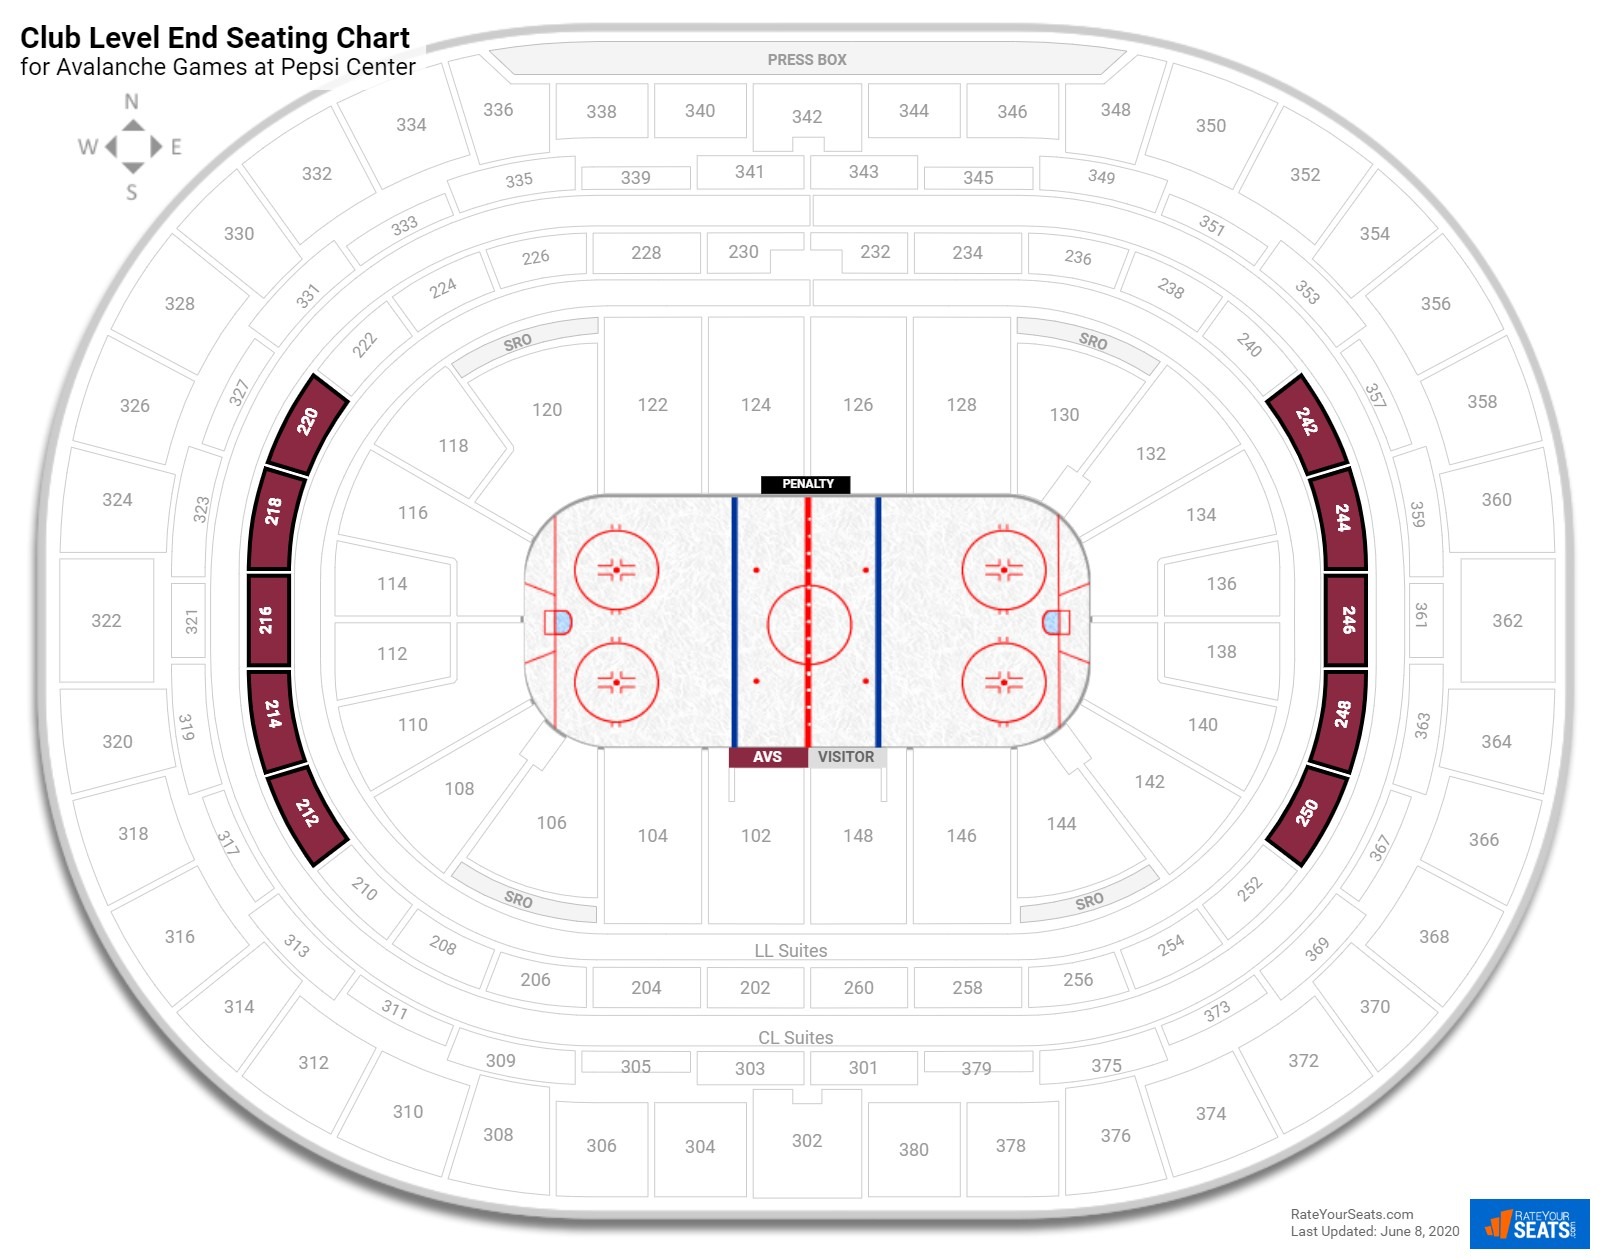 Pepsi Center Club Level Behind the Net seating chart